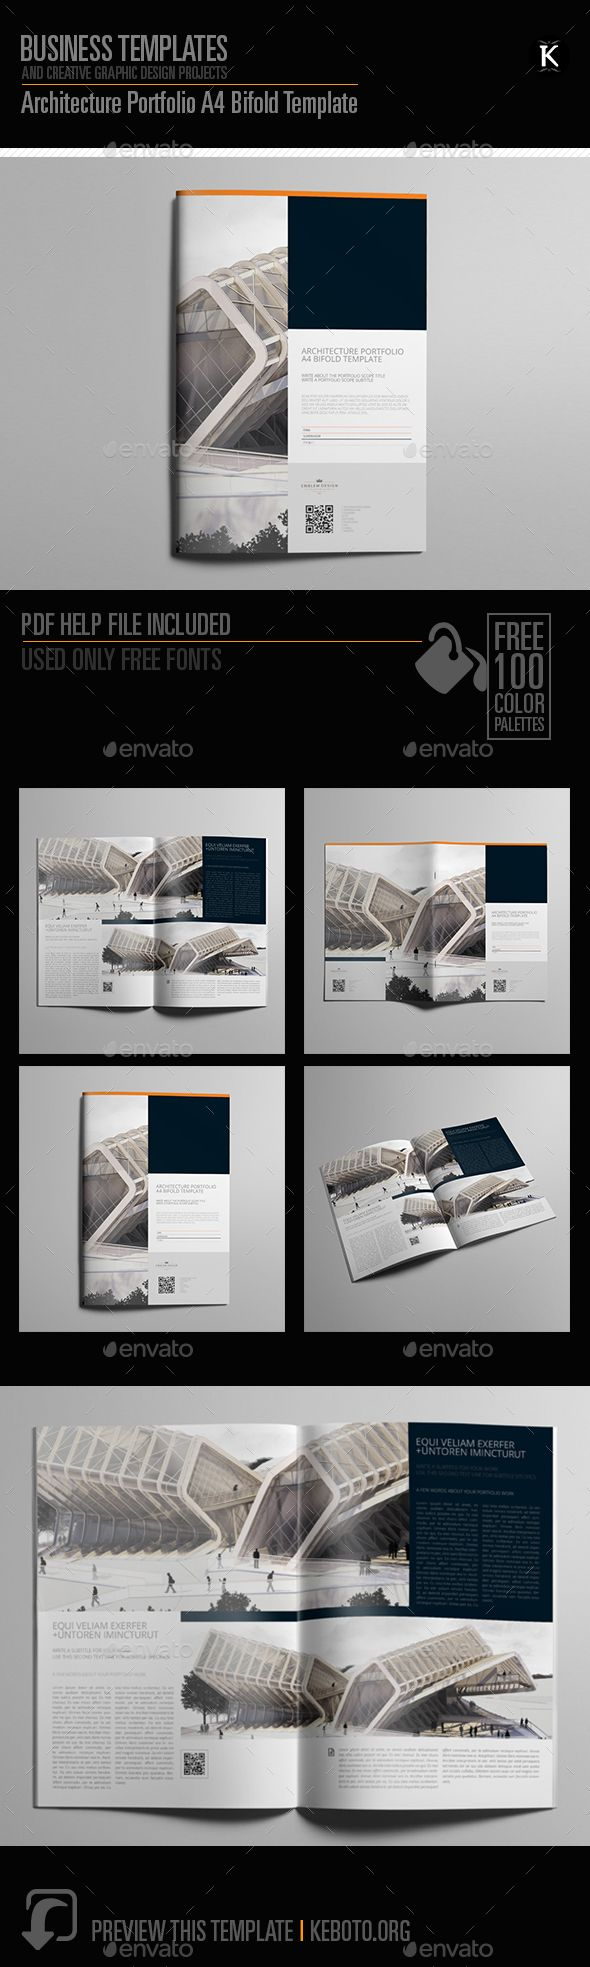 Architecture Portfolio A4 Bifold Template InDesign INDD